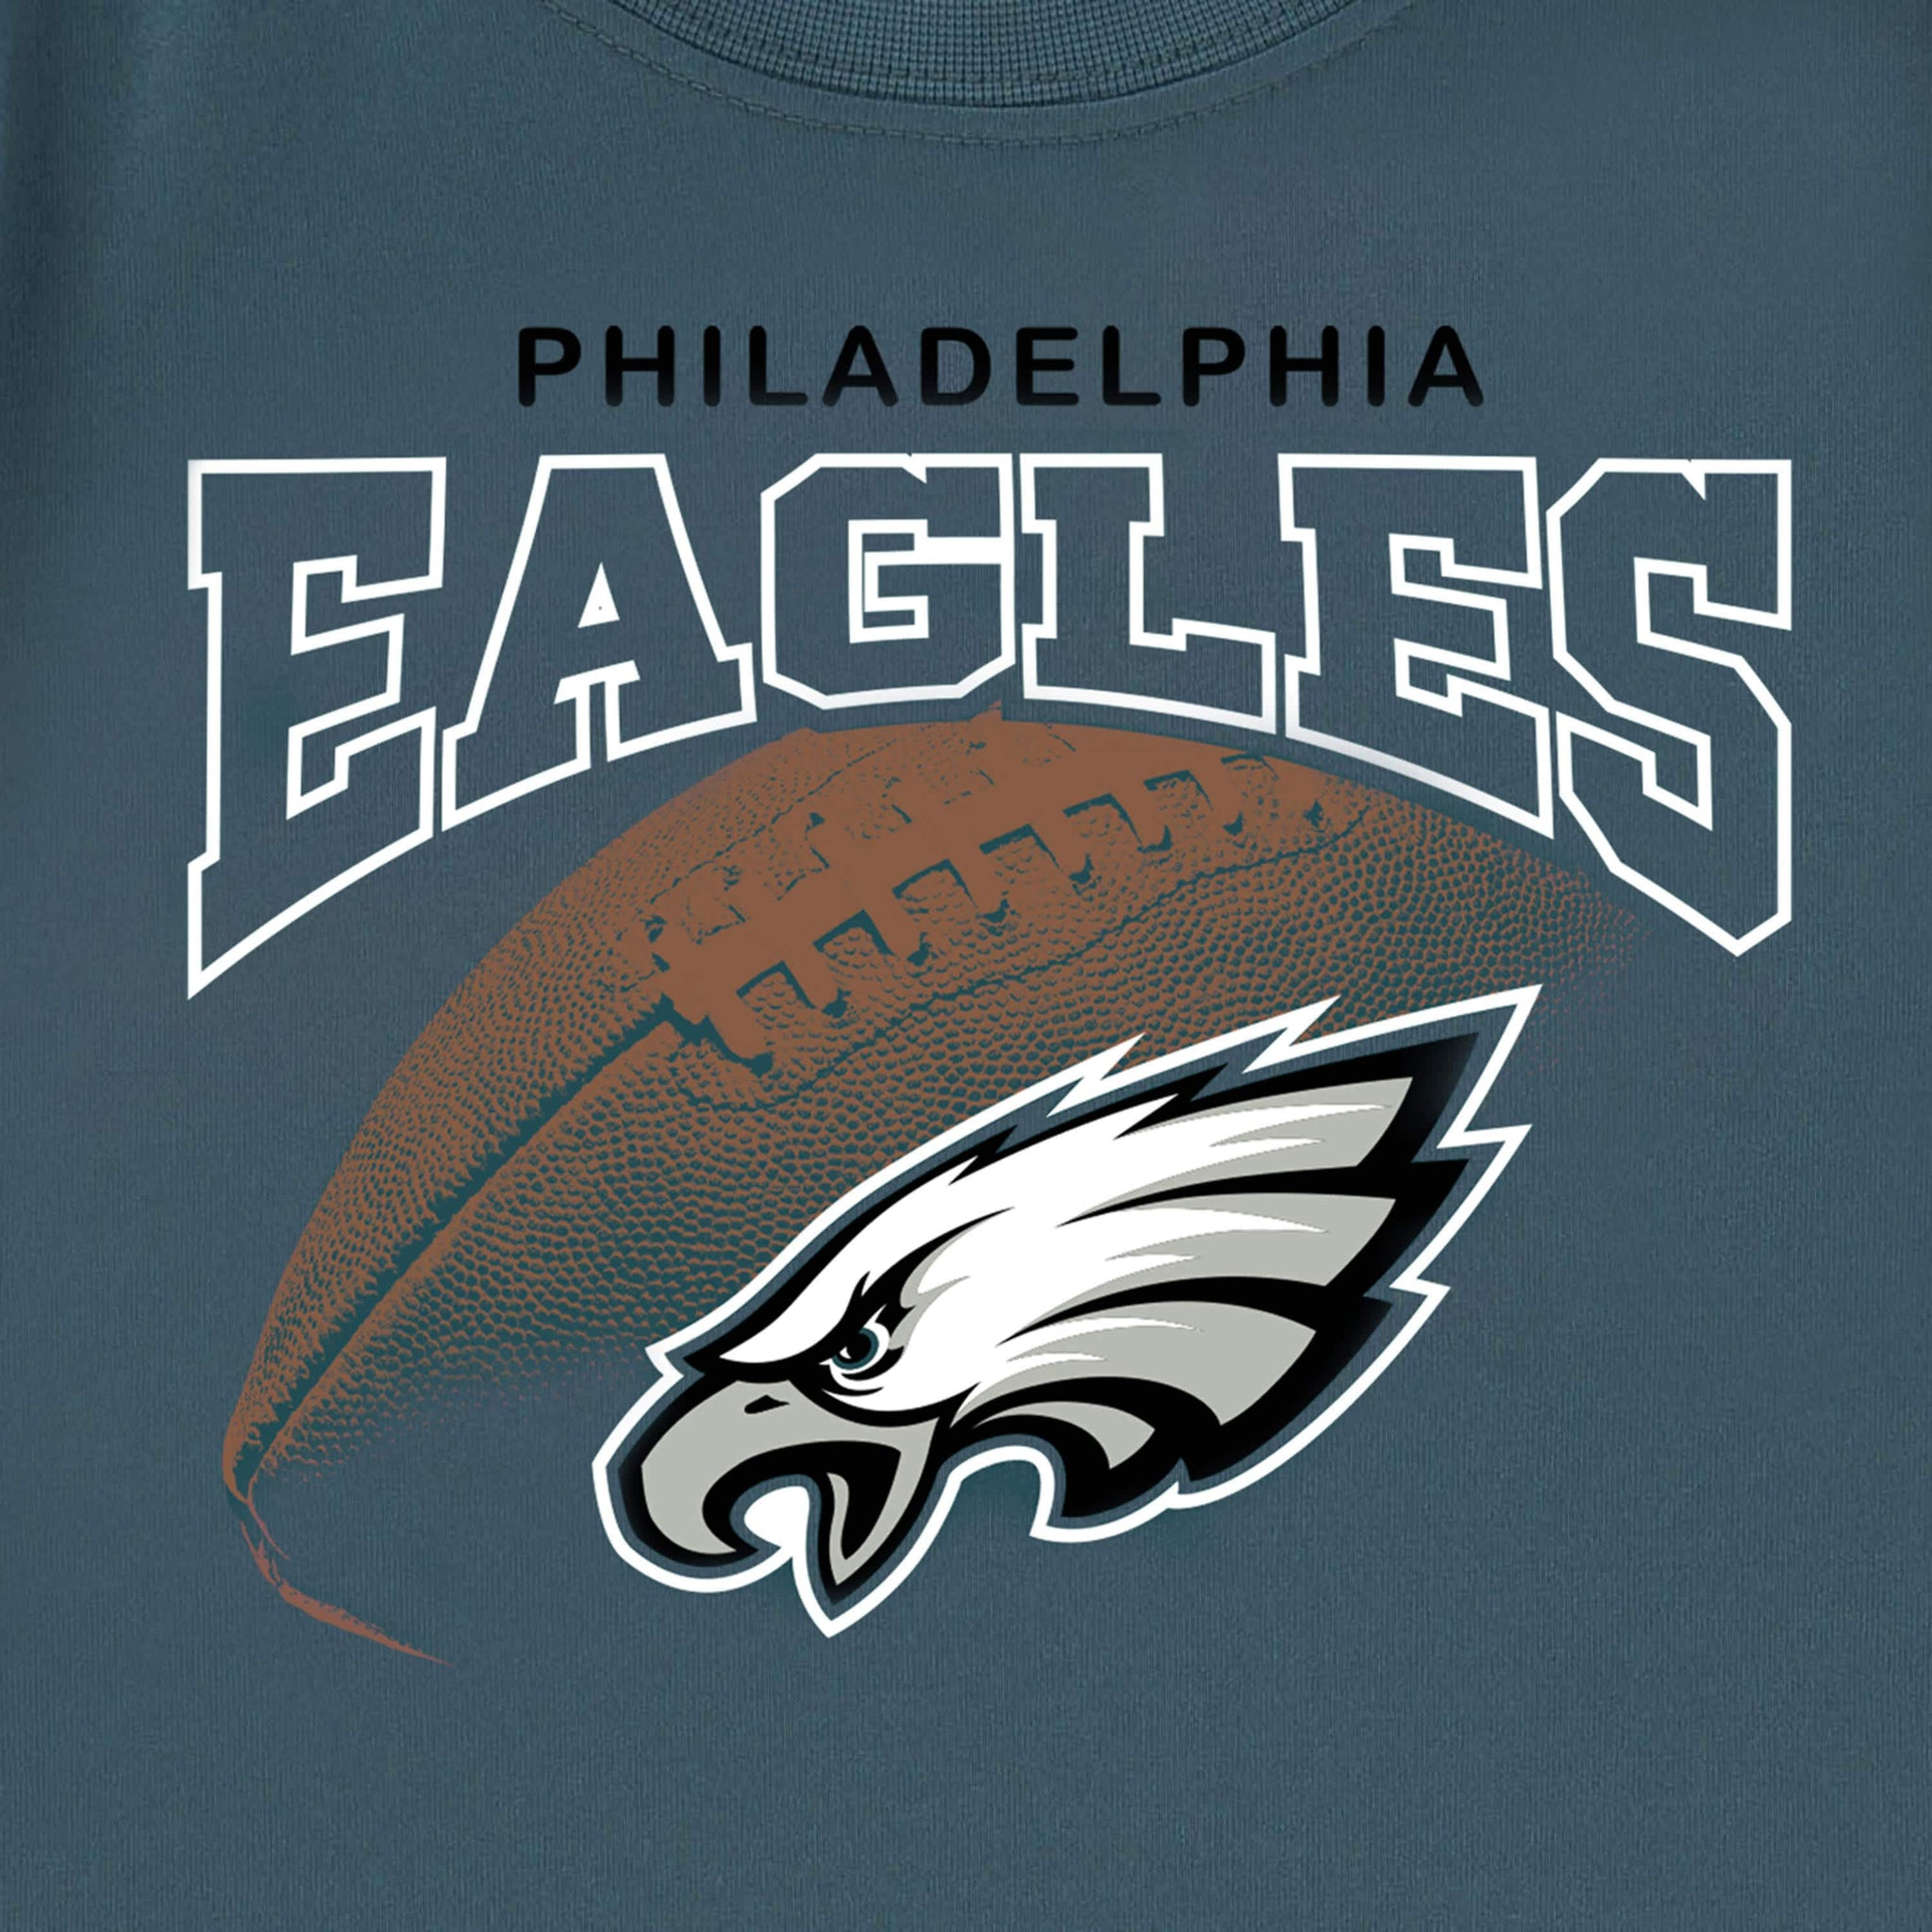 Philidelphia Eagles Toddler Boys Tee Shirt-Gerber Childrenswear